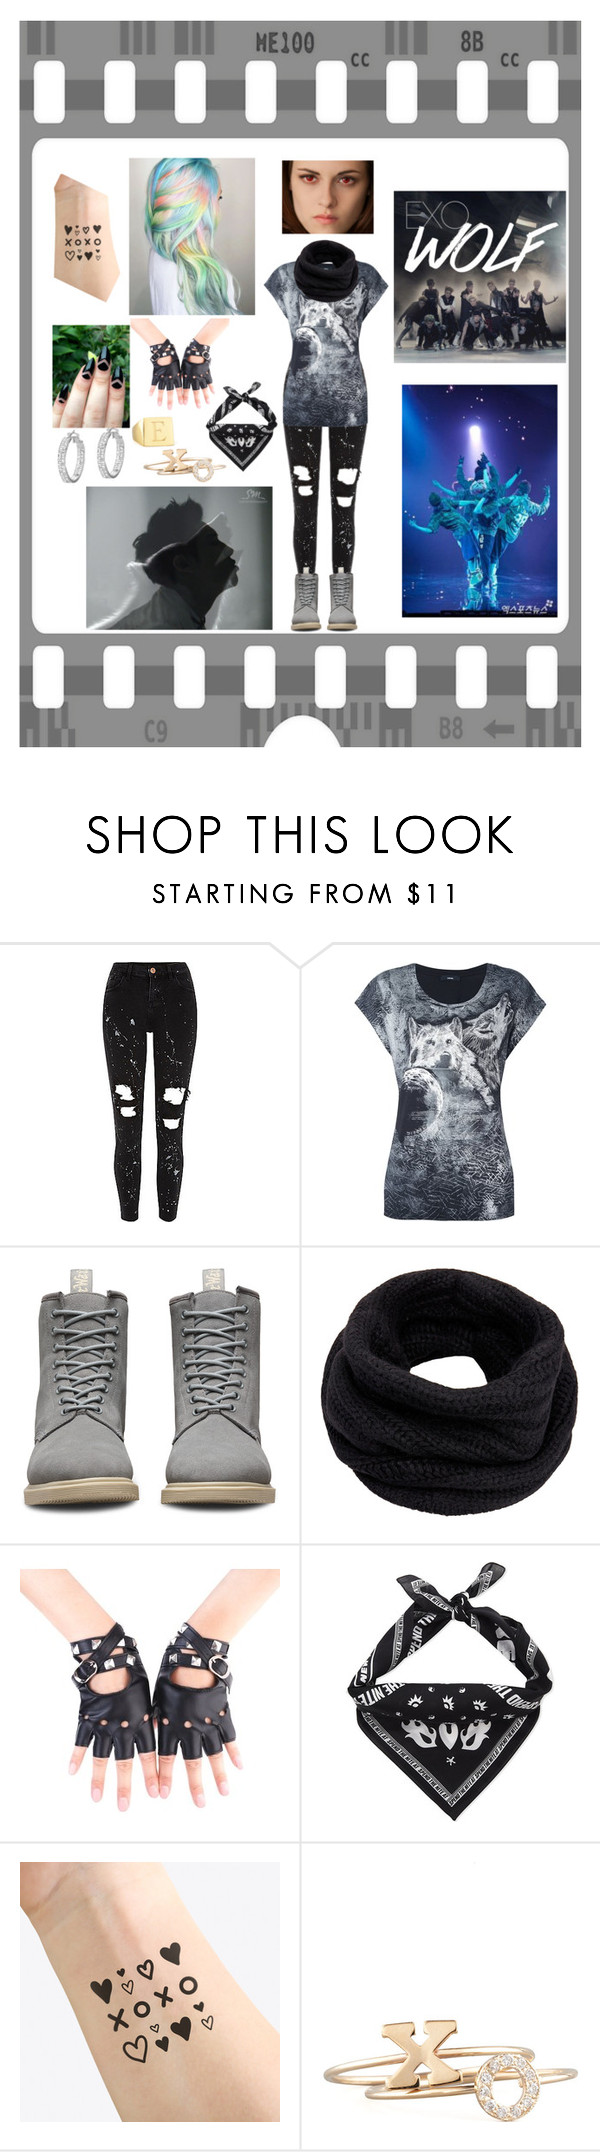 """""""EXO - WOLF"""" by bulletproof-wolfie on Polyvore featuring Diesel, Dr. Martens, Helmut Lang, Kenzo, NAVUCKO, Zoë Chicco and Sarah Chloe"""